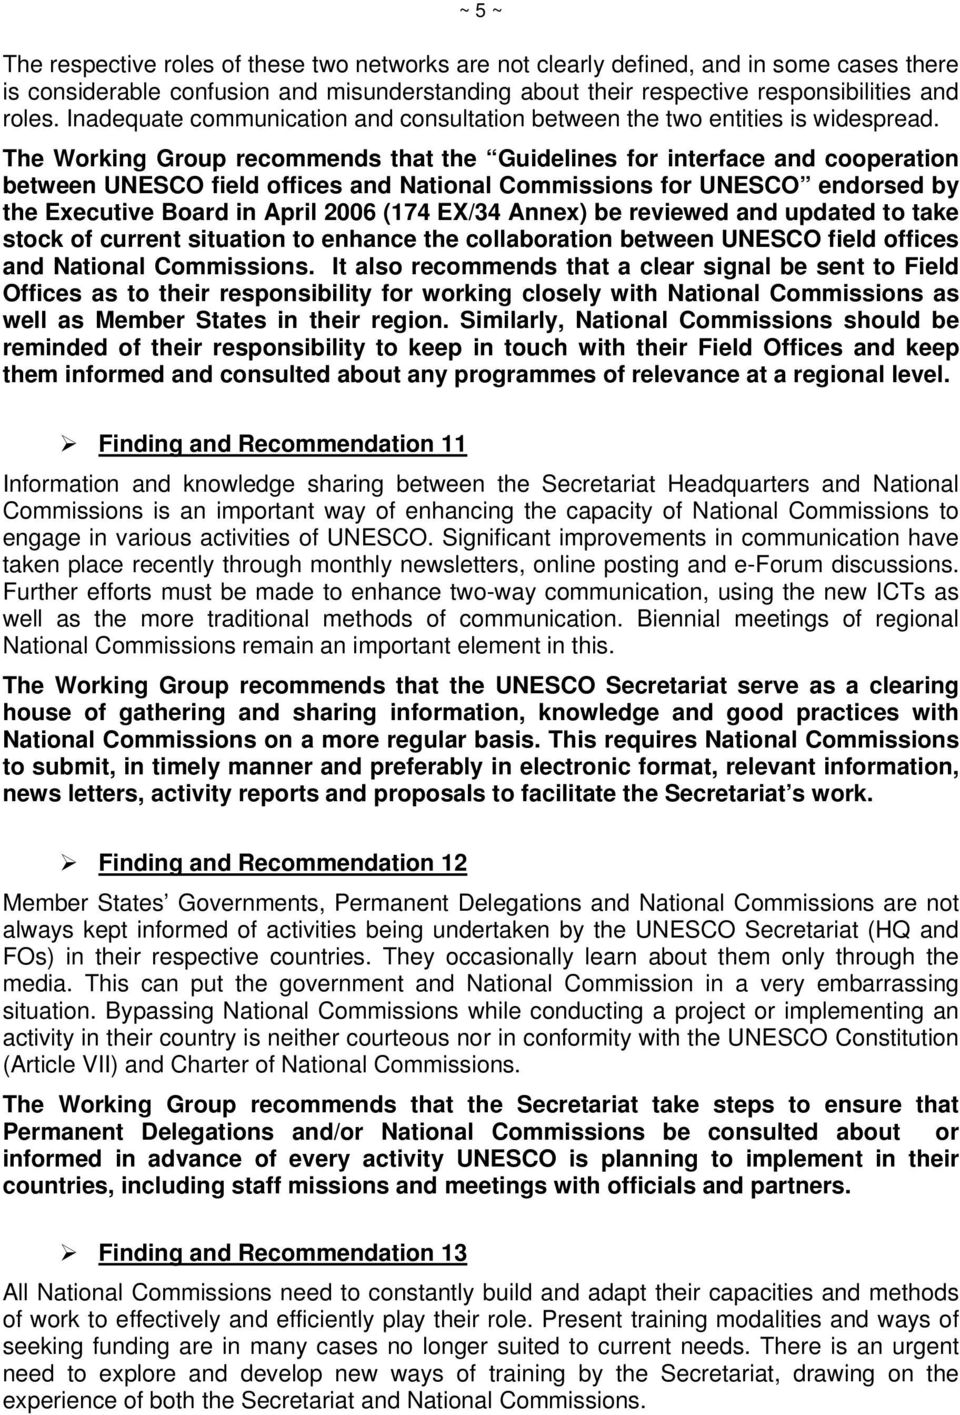 The Working Group recommends that the Guidelines for interface and cooperation between UNESCO field offices and National Commissions for UNESCO endorsed by the Executive Board in April 2006 (174